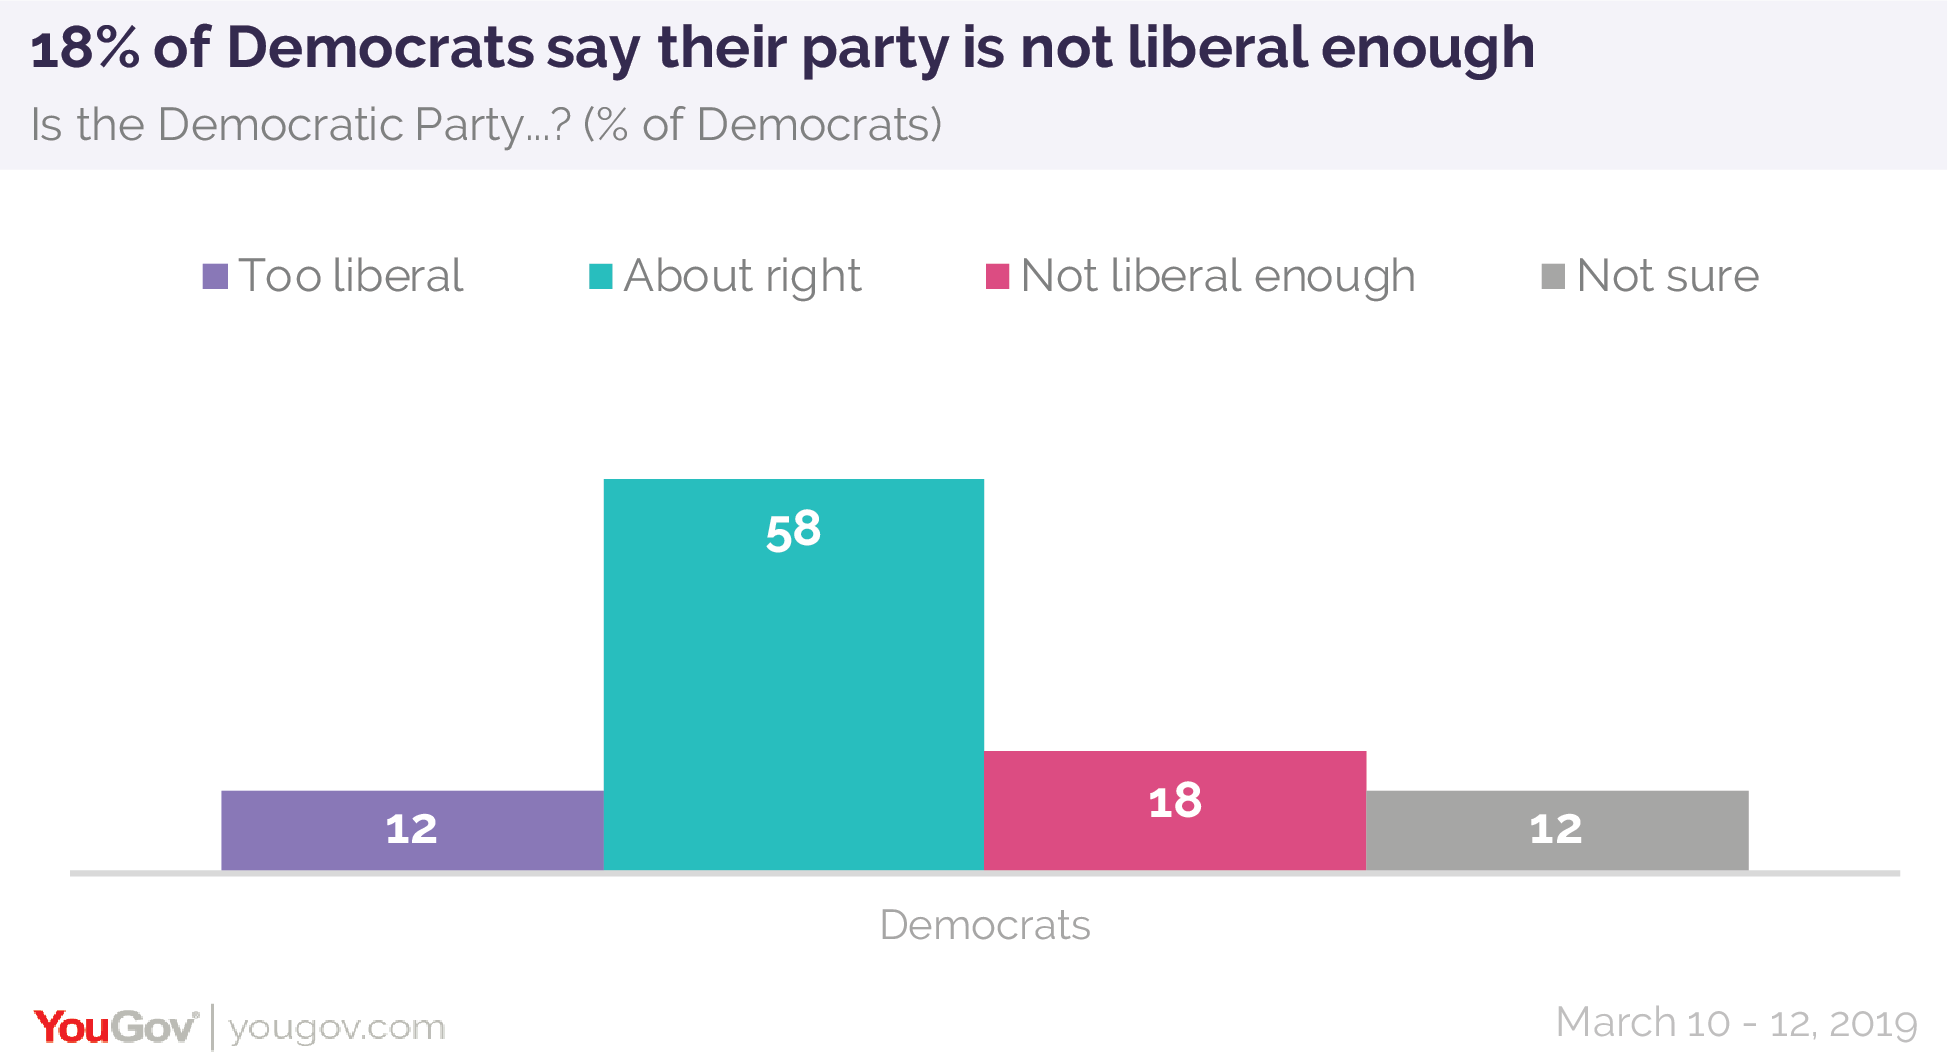 18% of Democrats say their party is not liberal enough